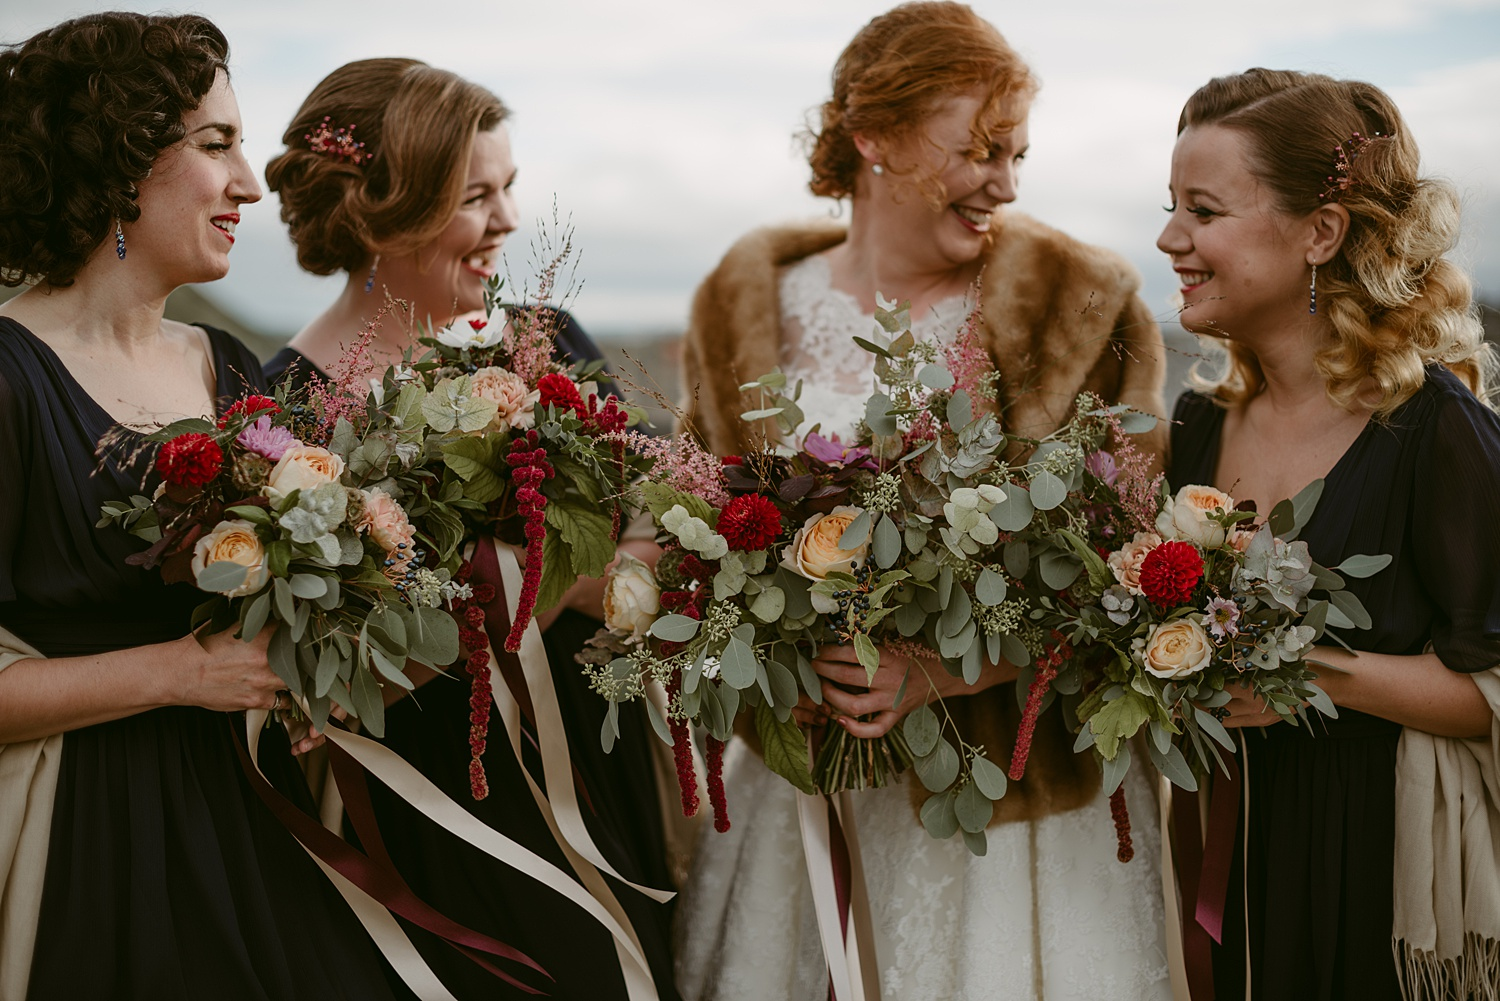 Claire-Fleck-Scottish-wedding-photography-2017__0035.jpg